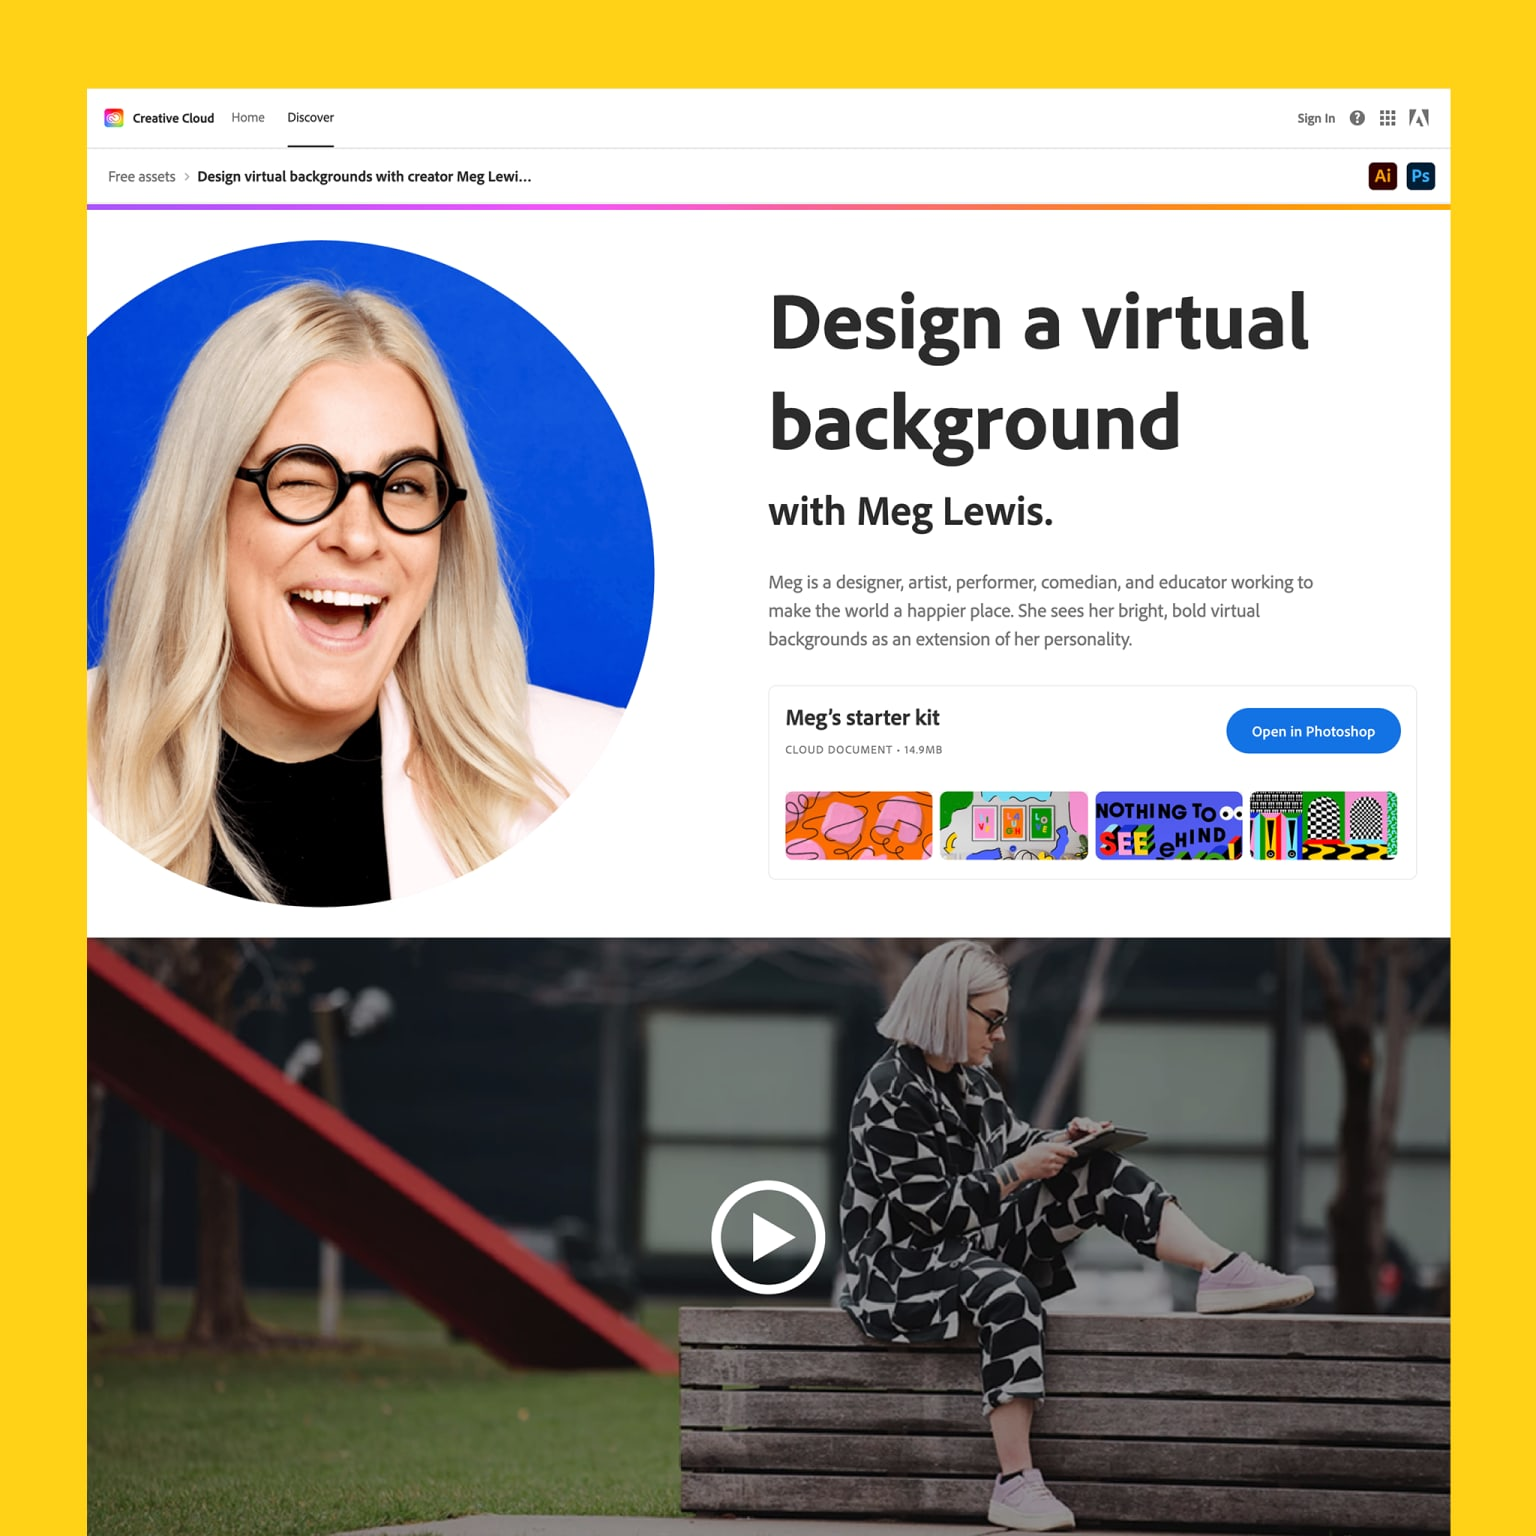 Design A Virtual Background With Meg Lewis